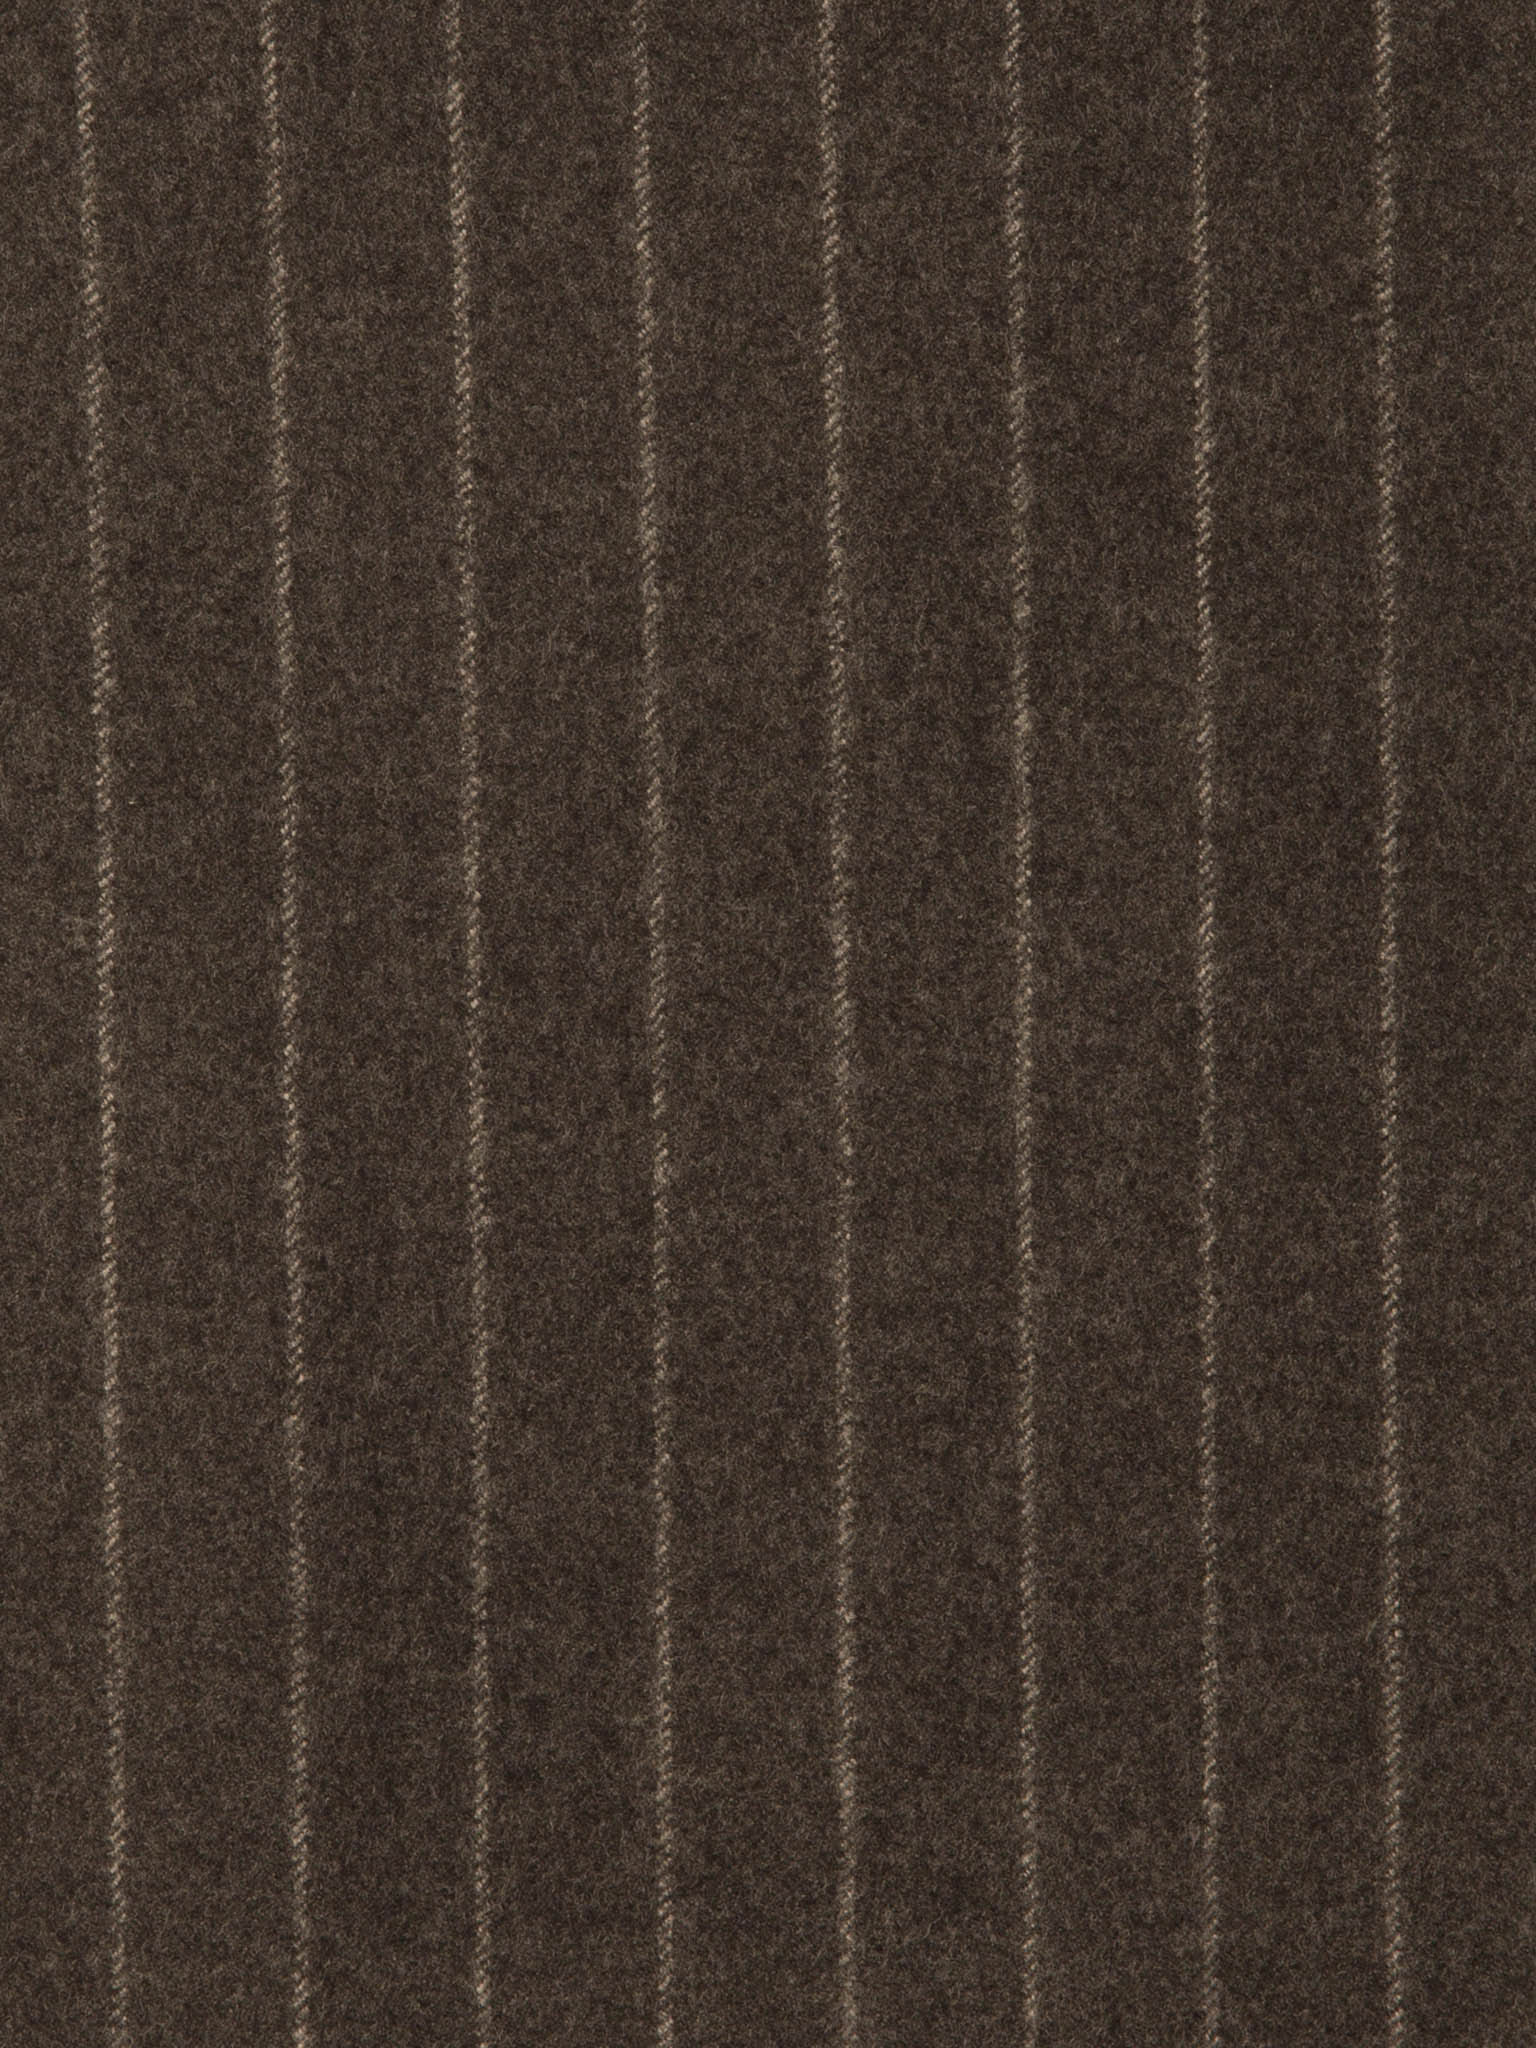 SAVILE ROW CHALK STRIPE DE12069